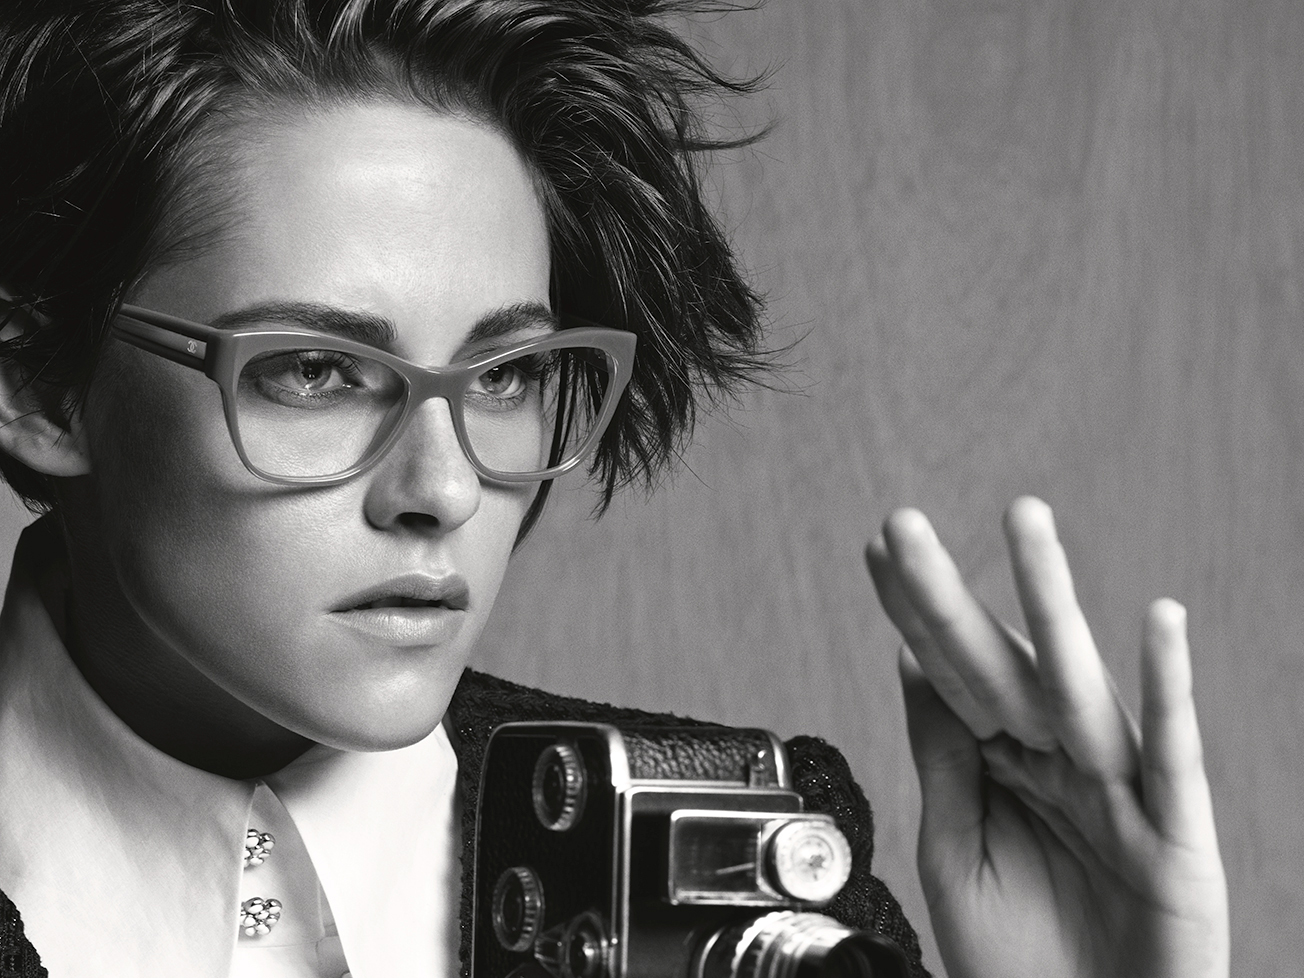 kristen stewart para chanel eyewear lima social diary. Black Bedroom Furniture Sets. Home Design Ideas